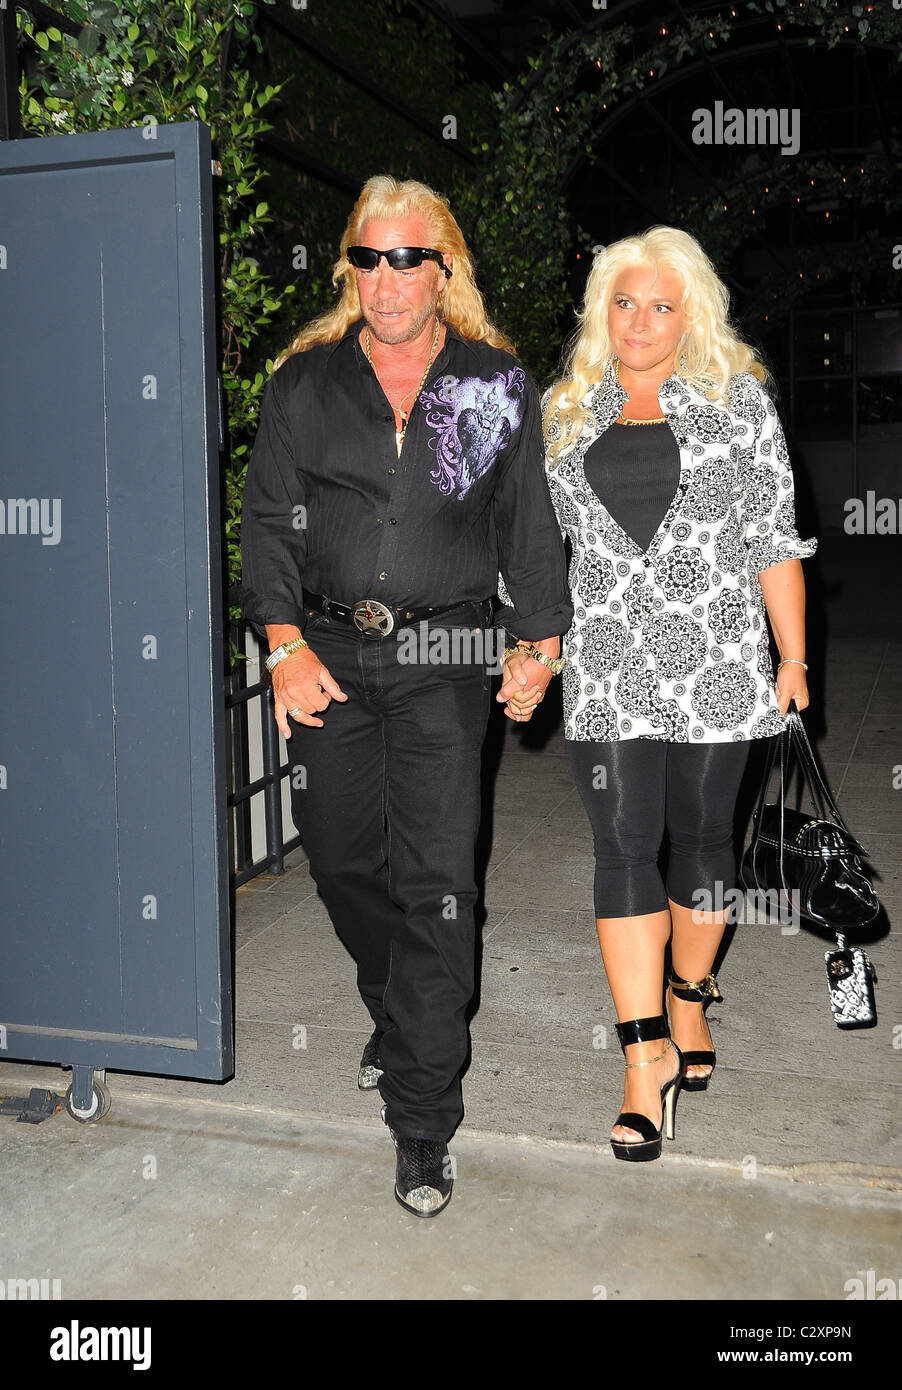 Dog the bounty hunter wife pictures to pin on pinterest for Duane chapman dog the bounty hunter